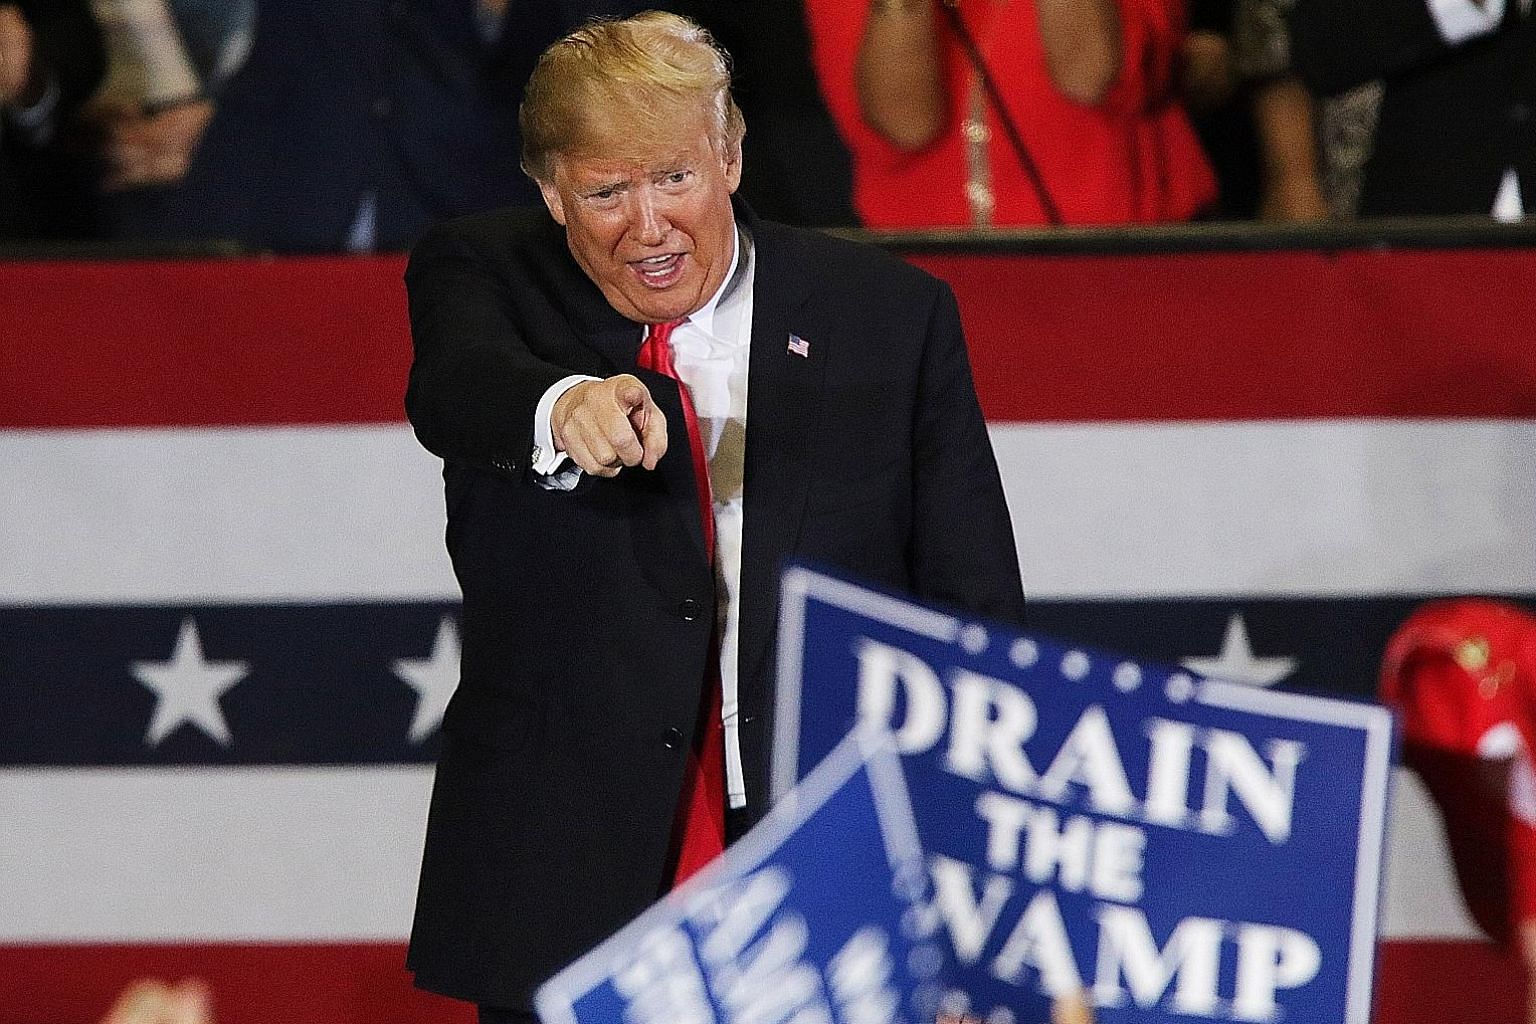 Polls ahead of the US midterm elections suggest the Democrats will win a majority in the House of Representatives but President Donald Trump's Republican Party will retain control of the Senate.